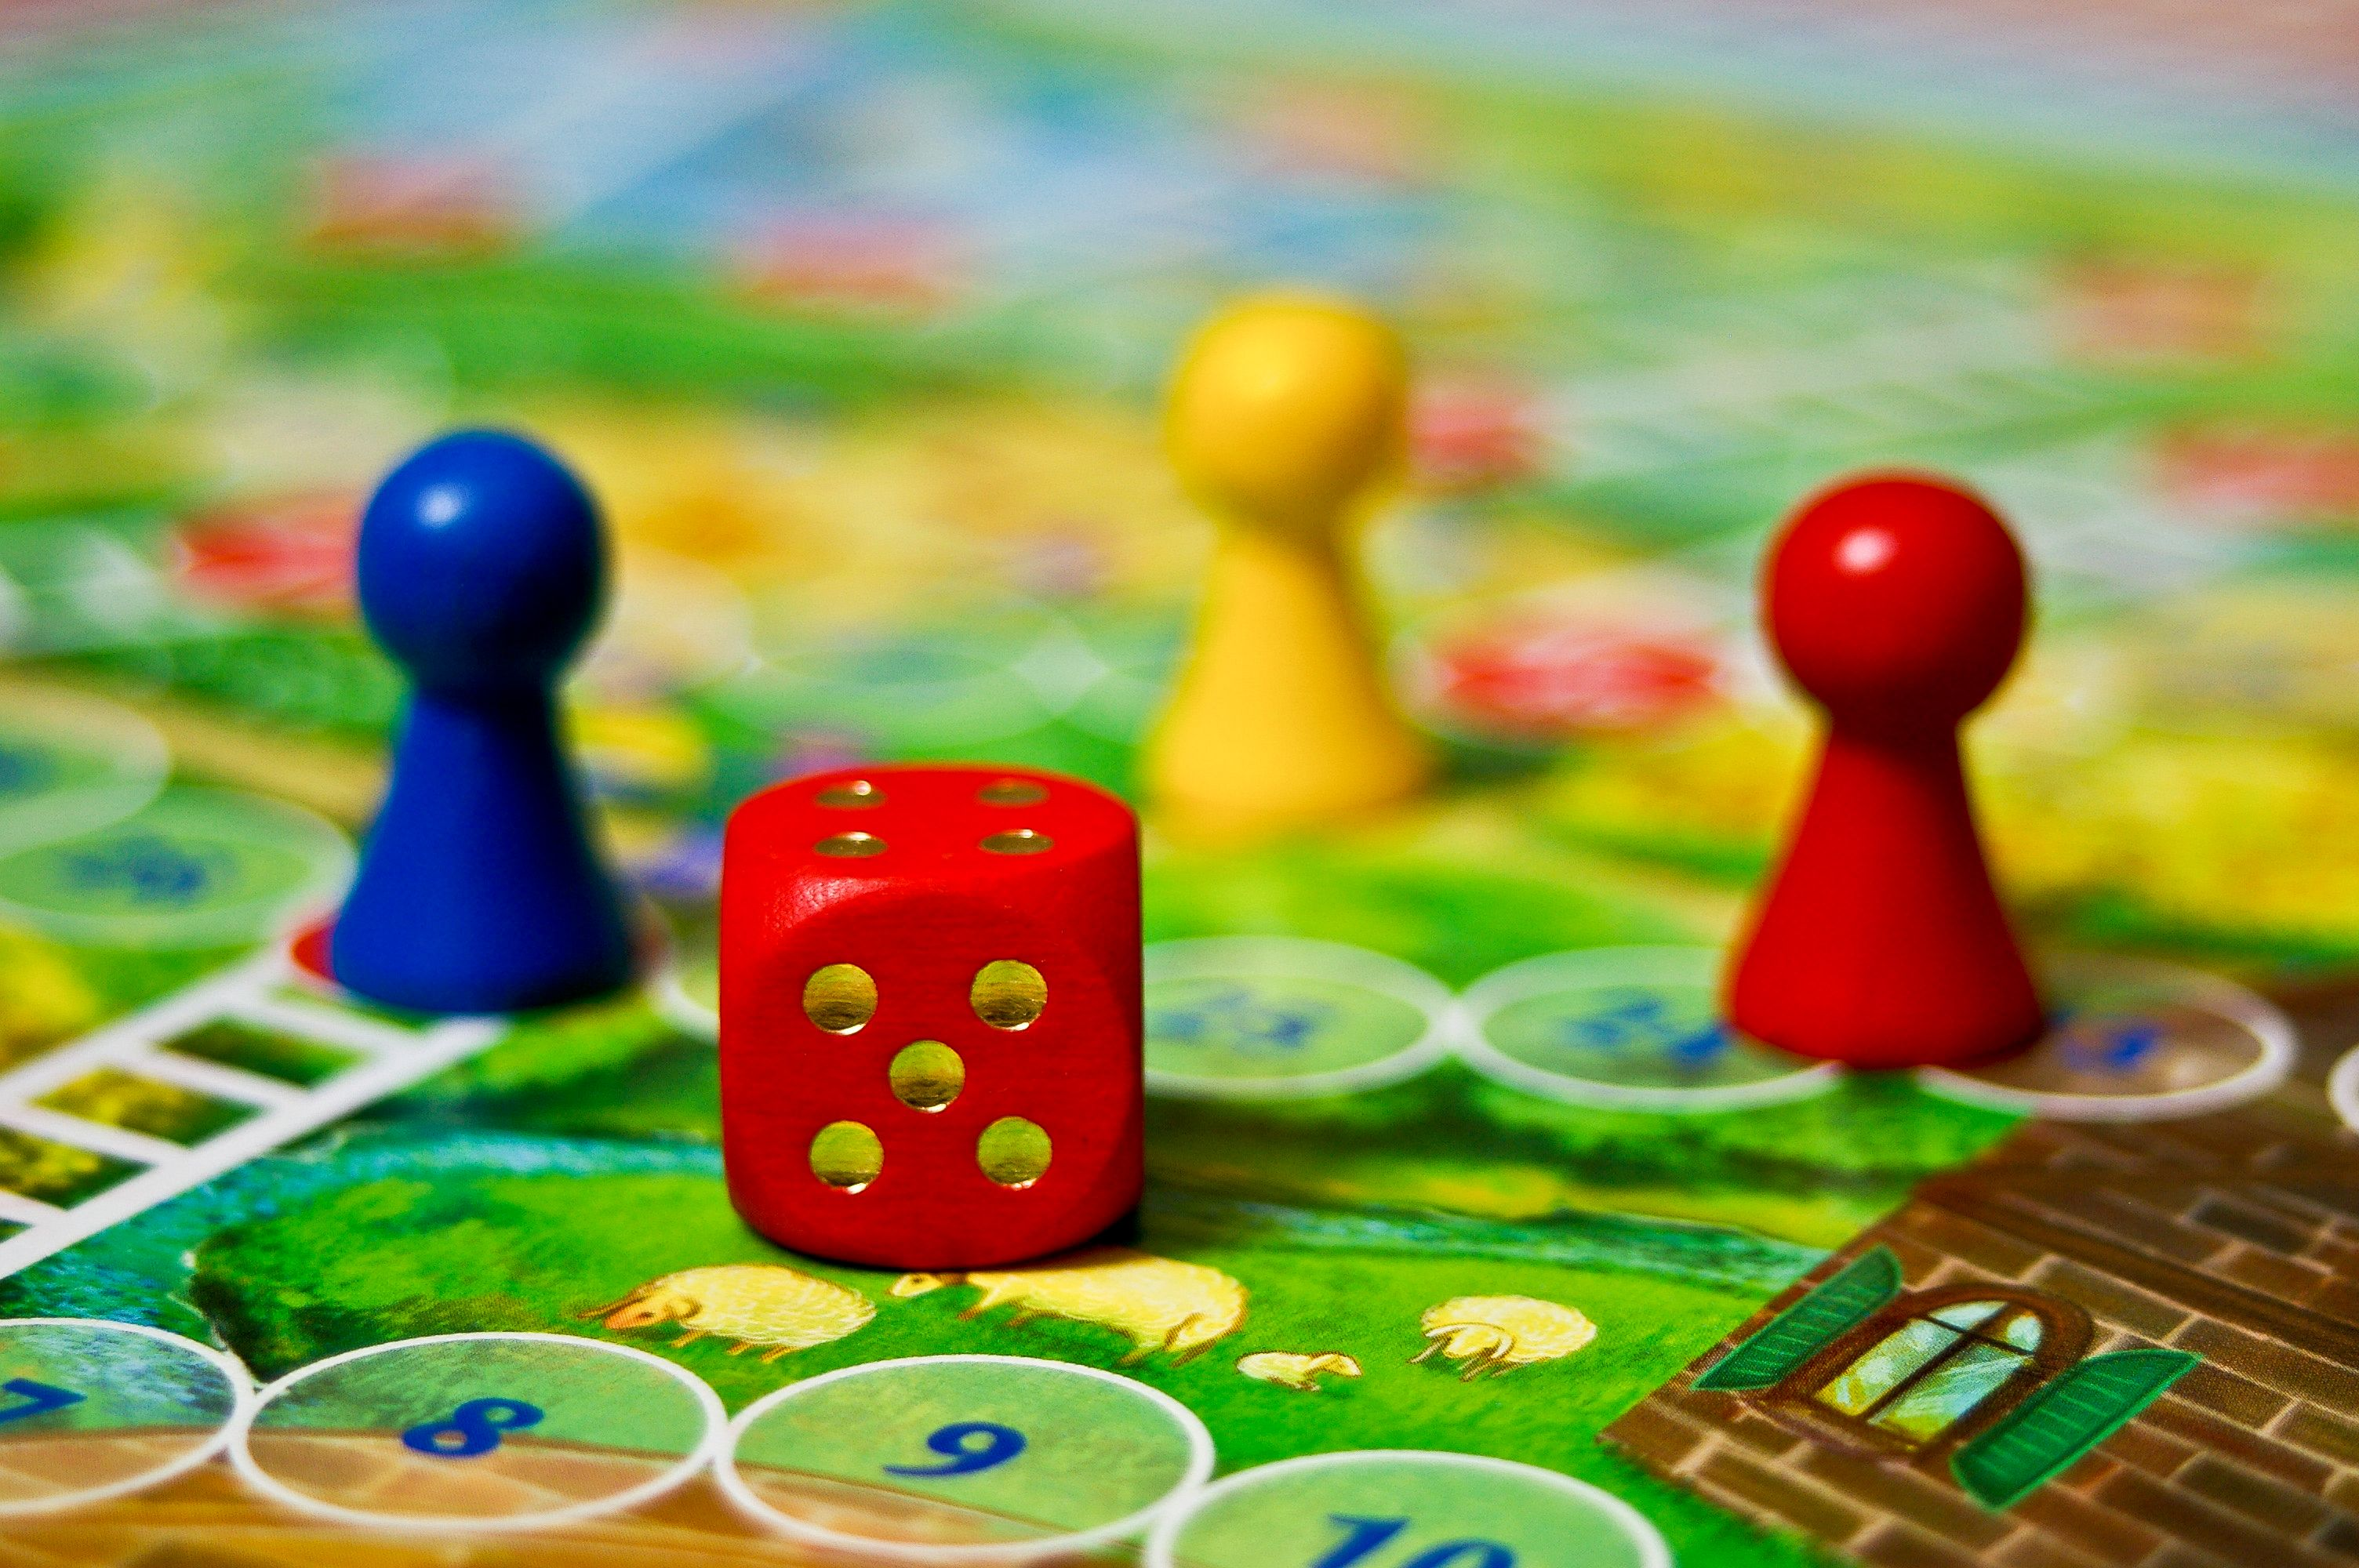 21 Best Party Games for Adults and Kids to Play for Game Night - Games for  Parties